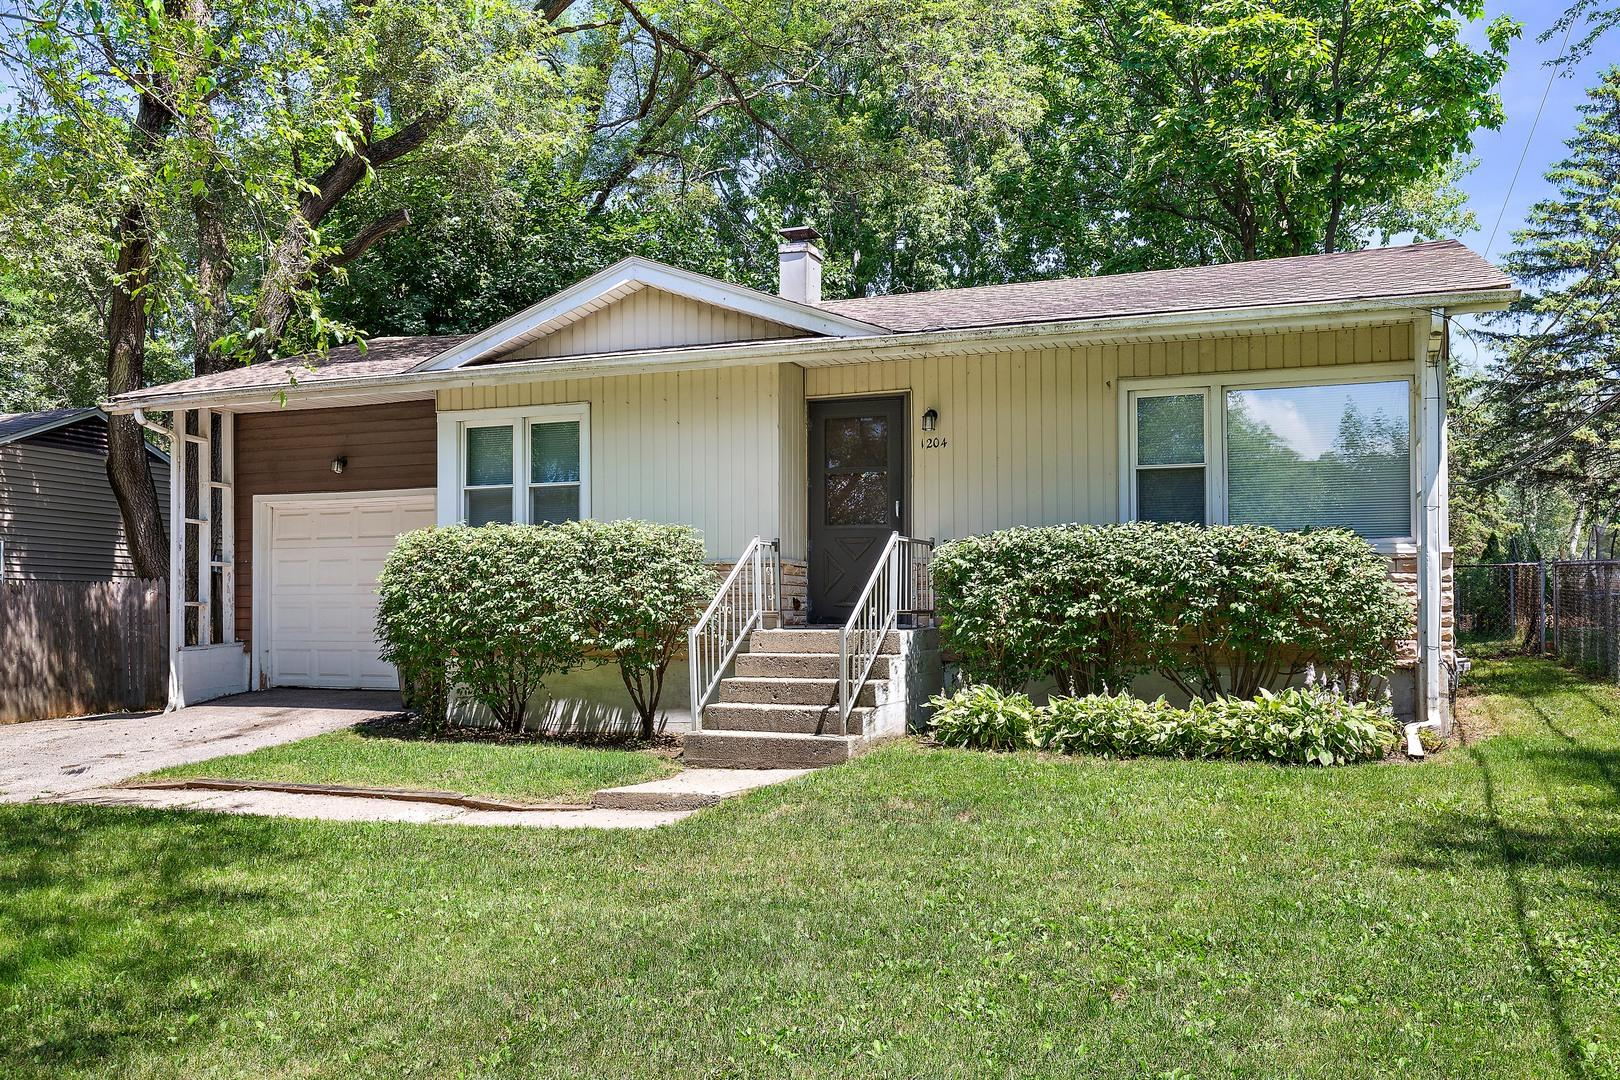 1204 Spruce Street, Lake in the Hills, IL 60156 - #: 10802922